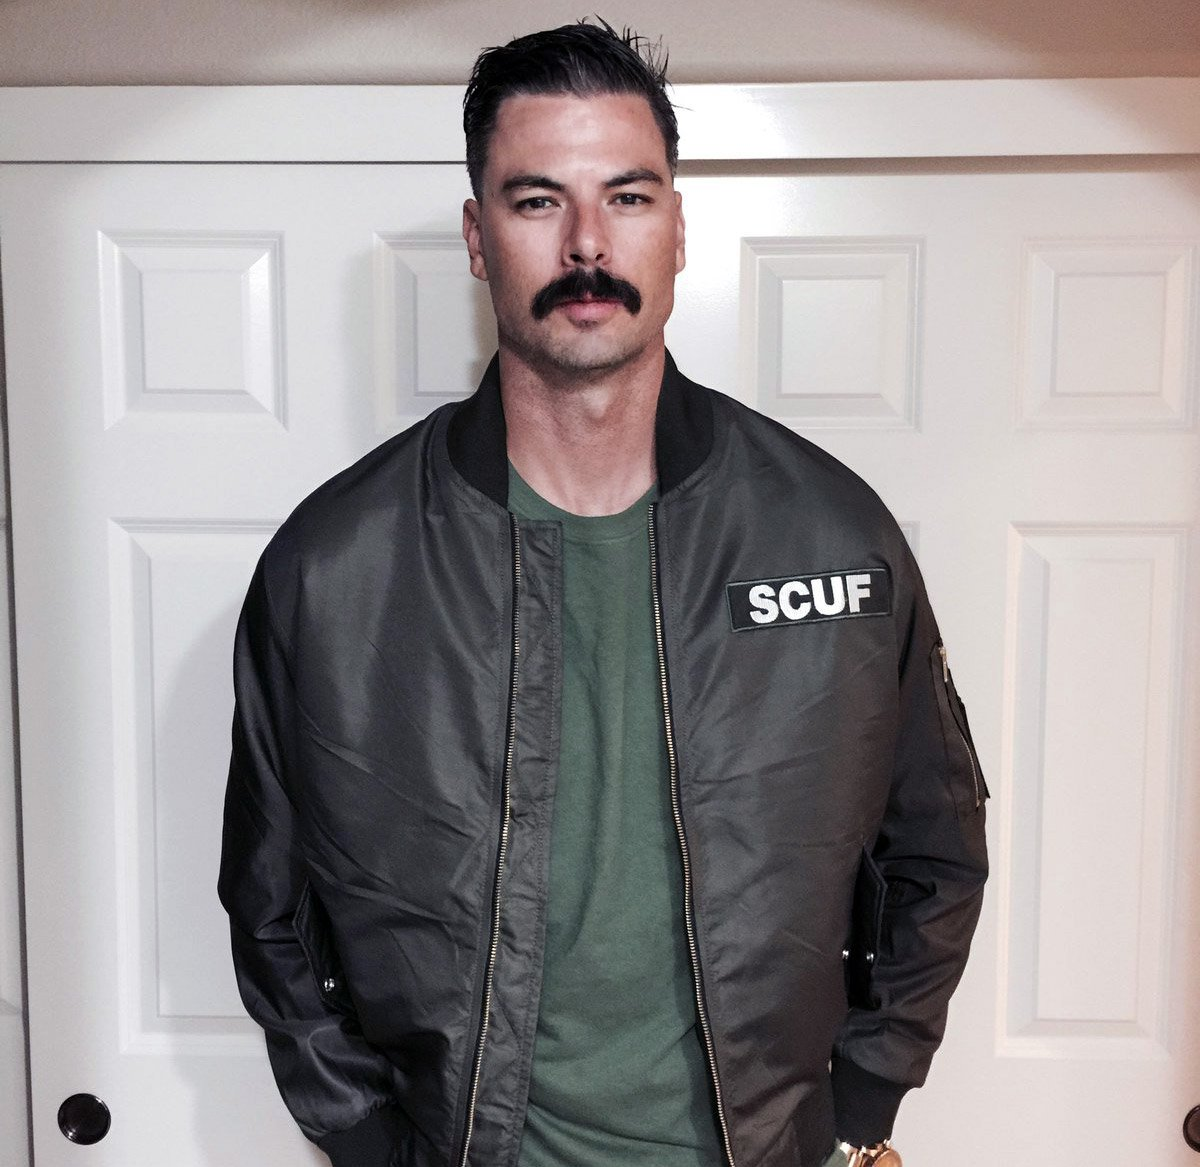 The 38-year old son of father (?) and mother(?) Dr DisRespect in 2020 photo. Dr DisRespect earned a  million dollar salary - leaving the net worth at  million in 2020